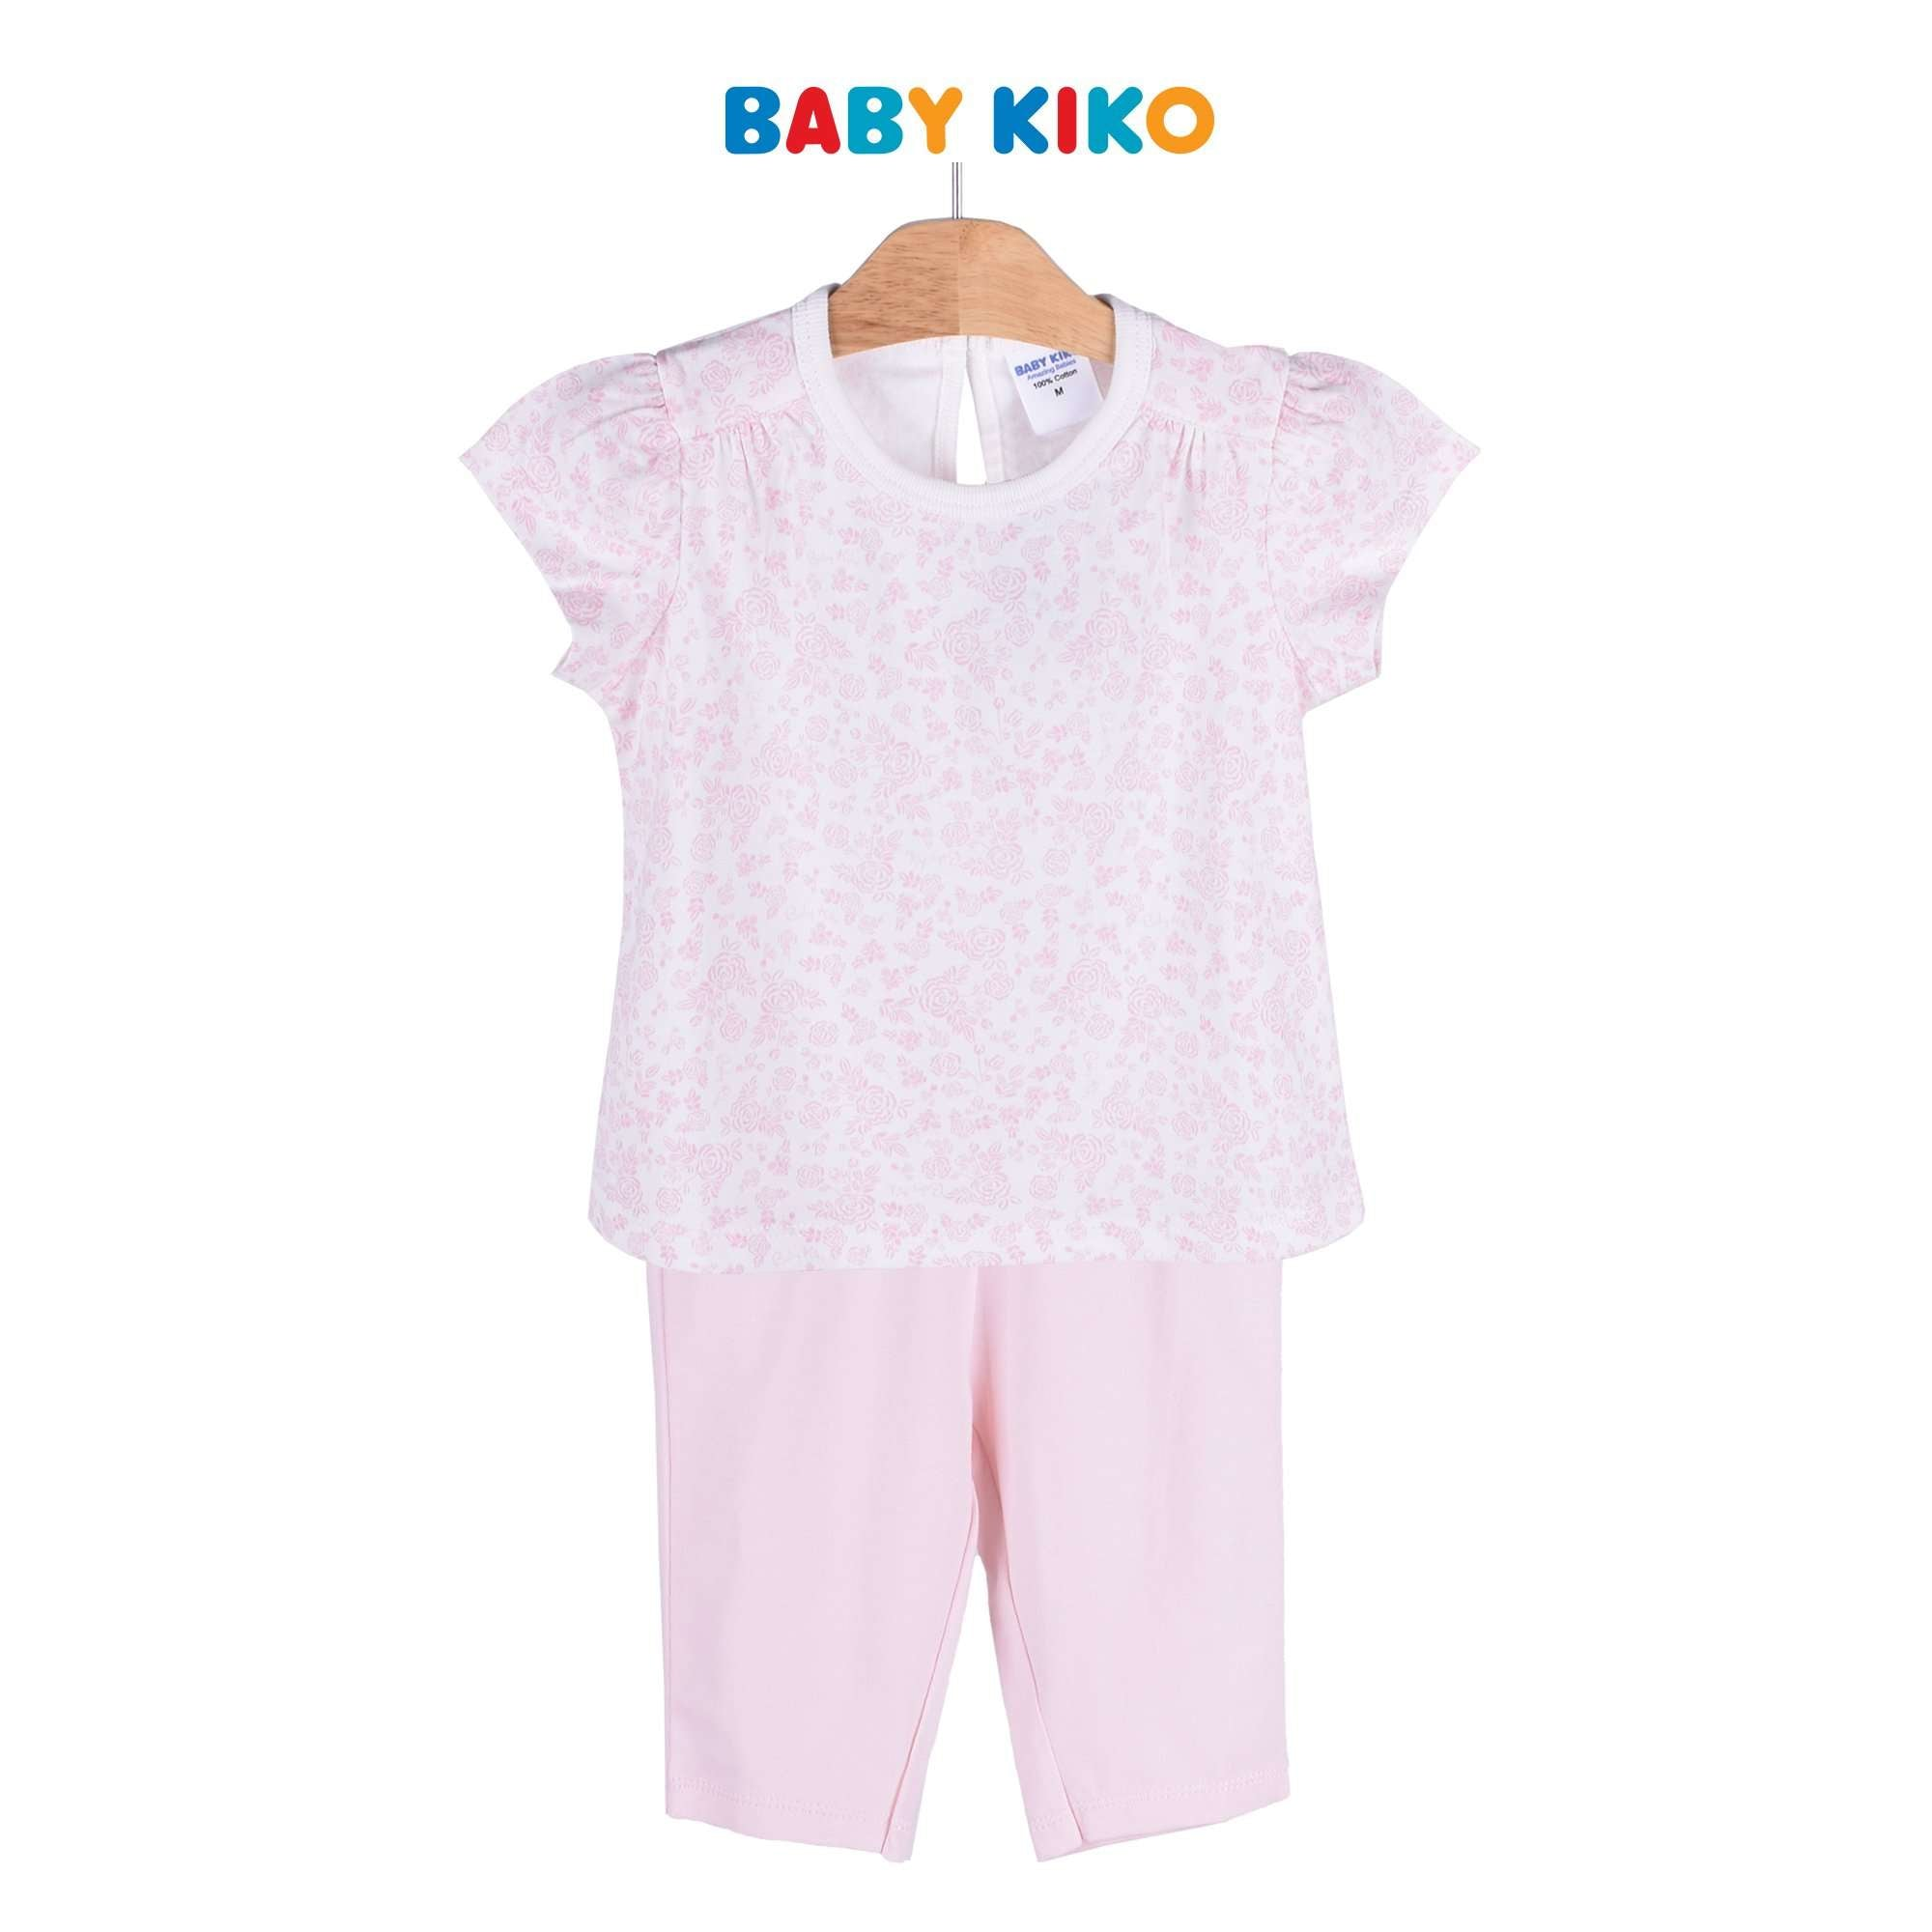 Baby KIKO Toddler Girl Short Sleeve Leggings Suit - Pink 325131-411 : Buy Baby KIKO online at CMG.MY